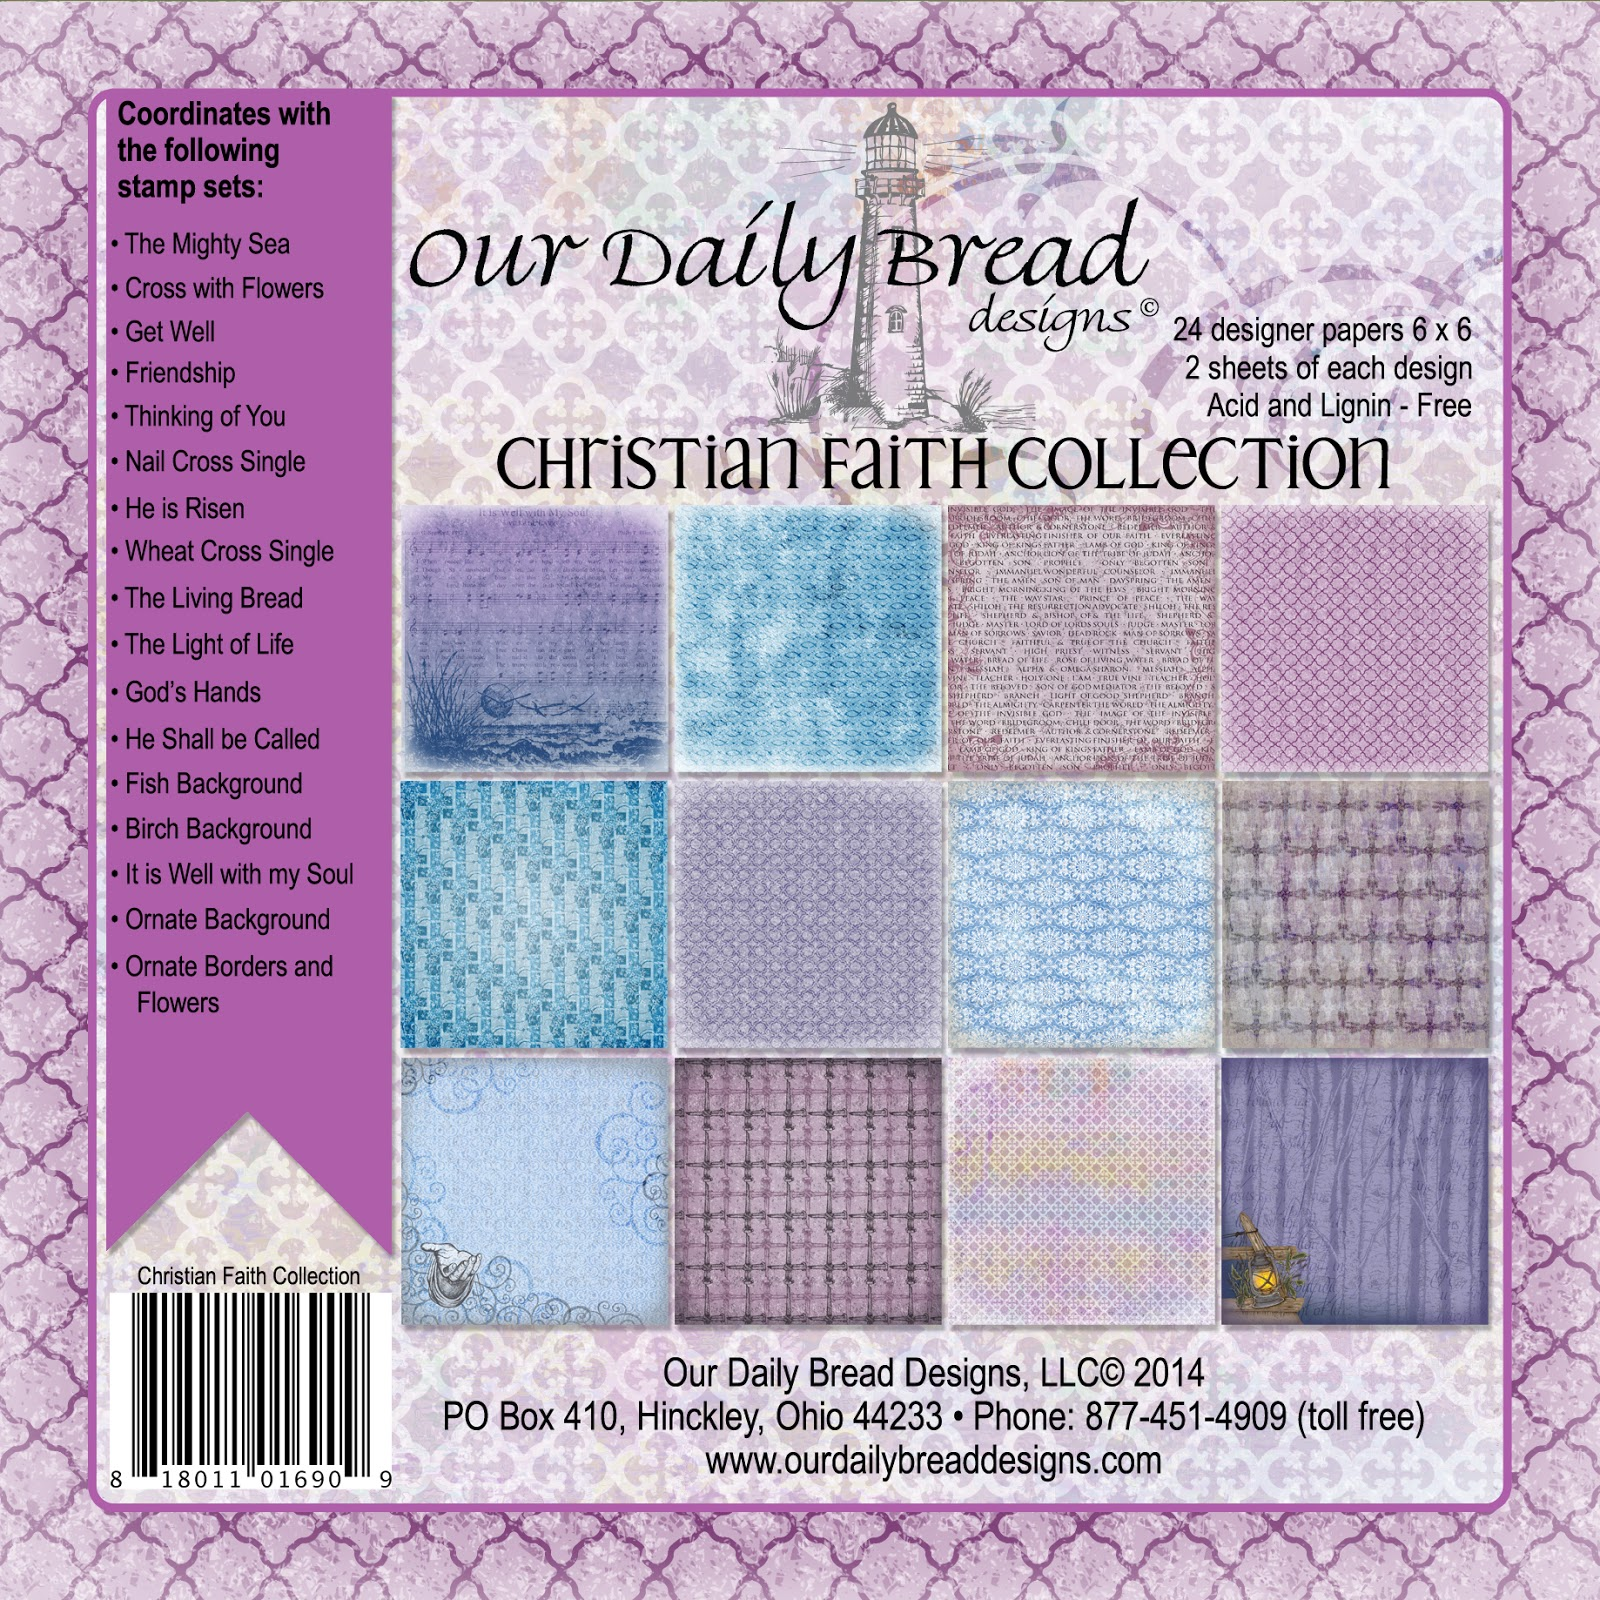 http://www.ourdailybreaddesigns.com/index.php/christian-faith-collection-6x6-paper-pad.html